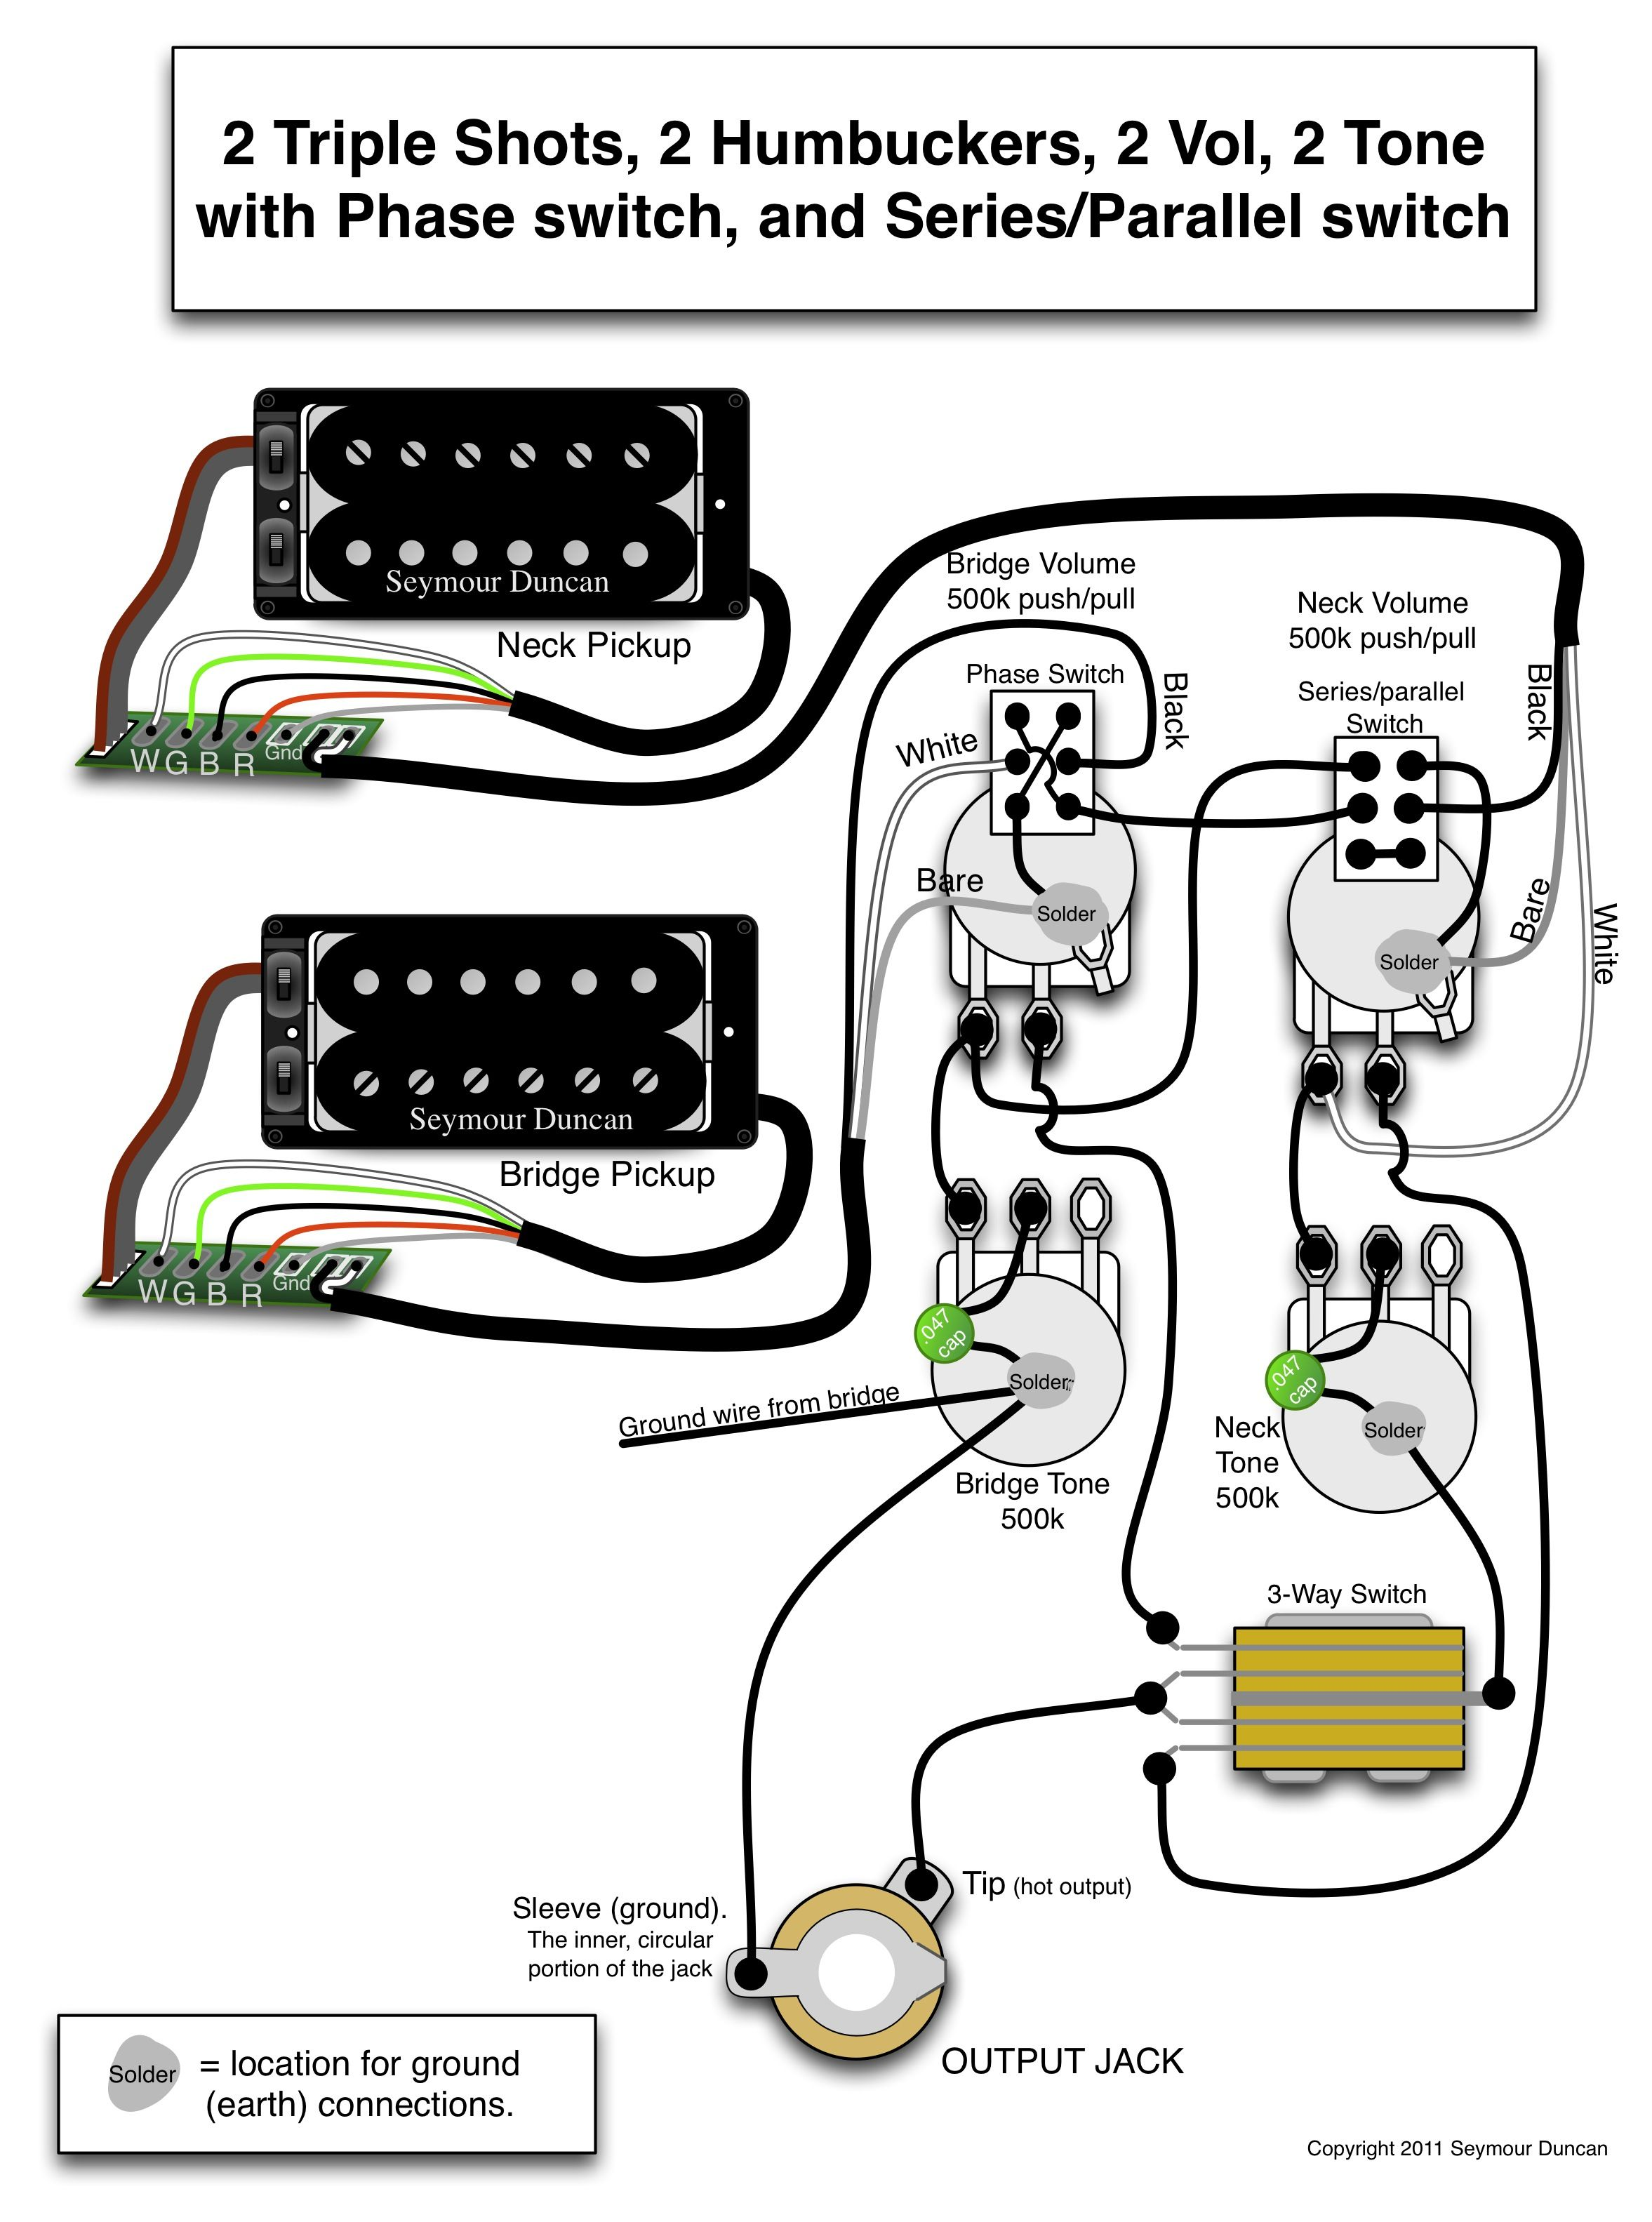 14dc4408abcf3c075a00cd280c1ea7ec seymour duncan wiring diagram 2 triple shots, 2 humbuckers, 2  at mifinder.co